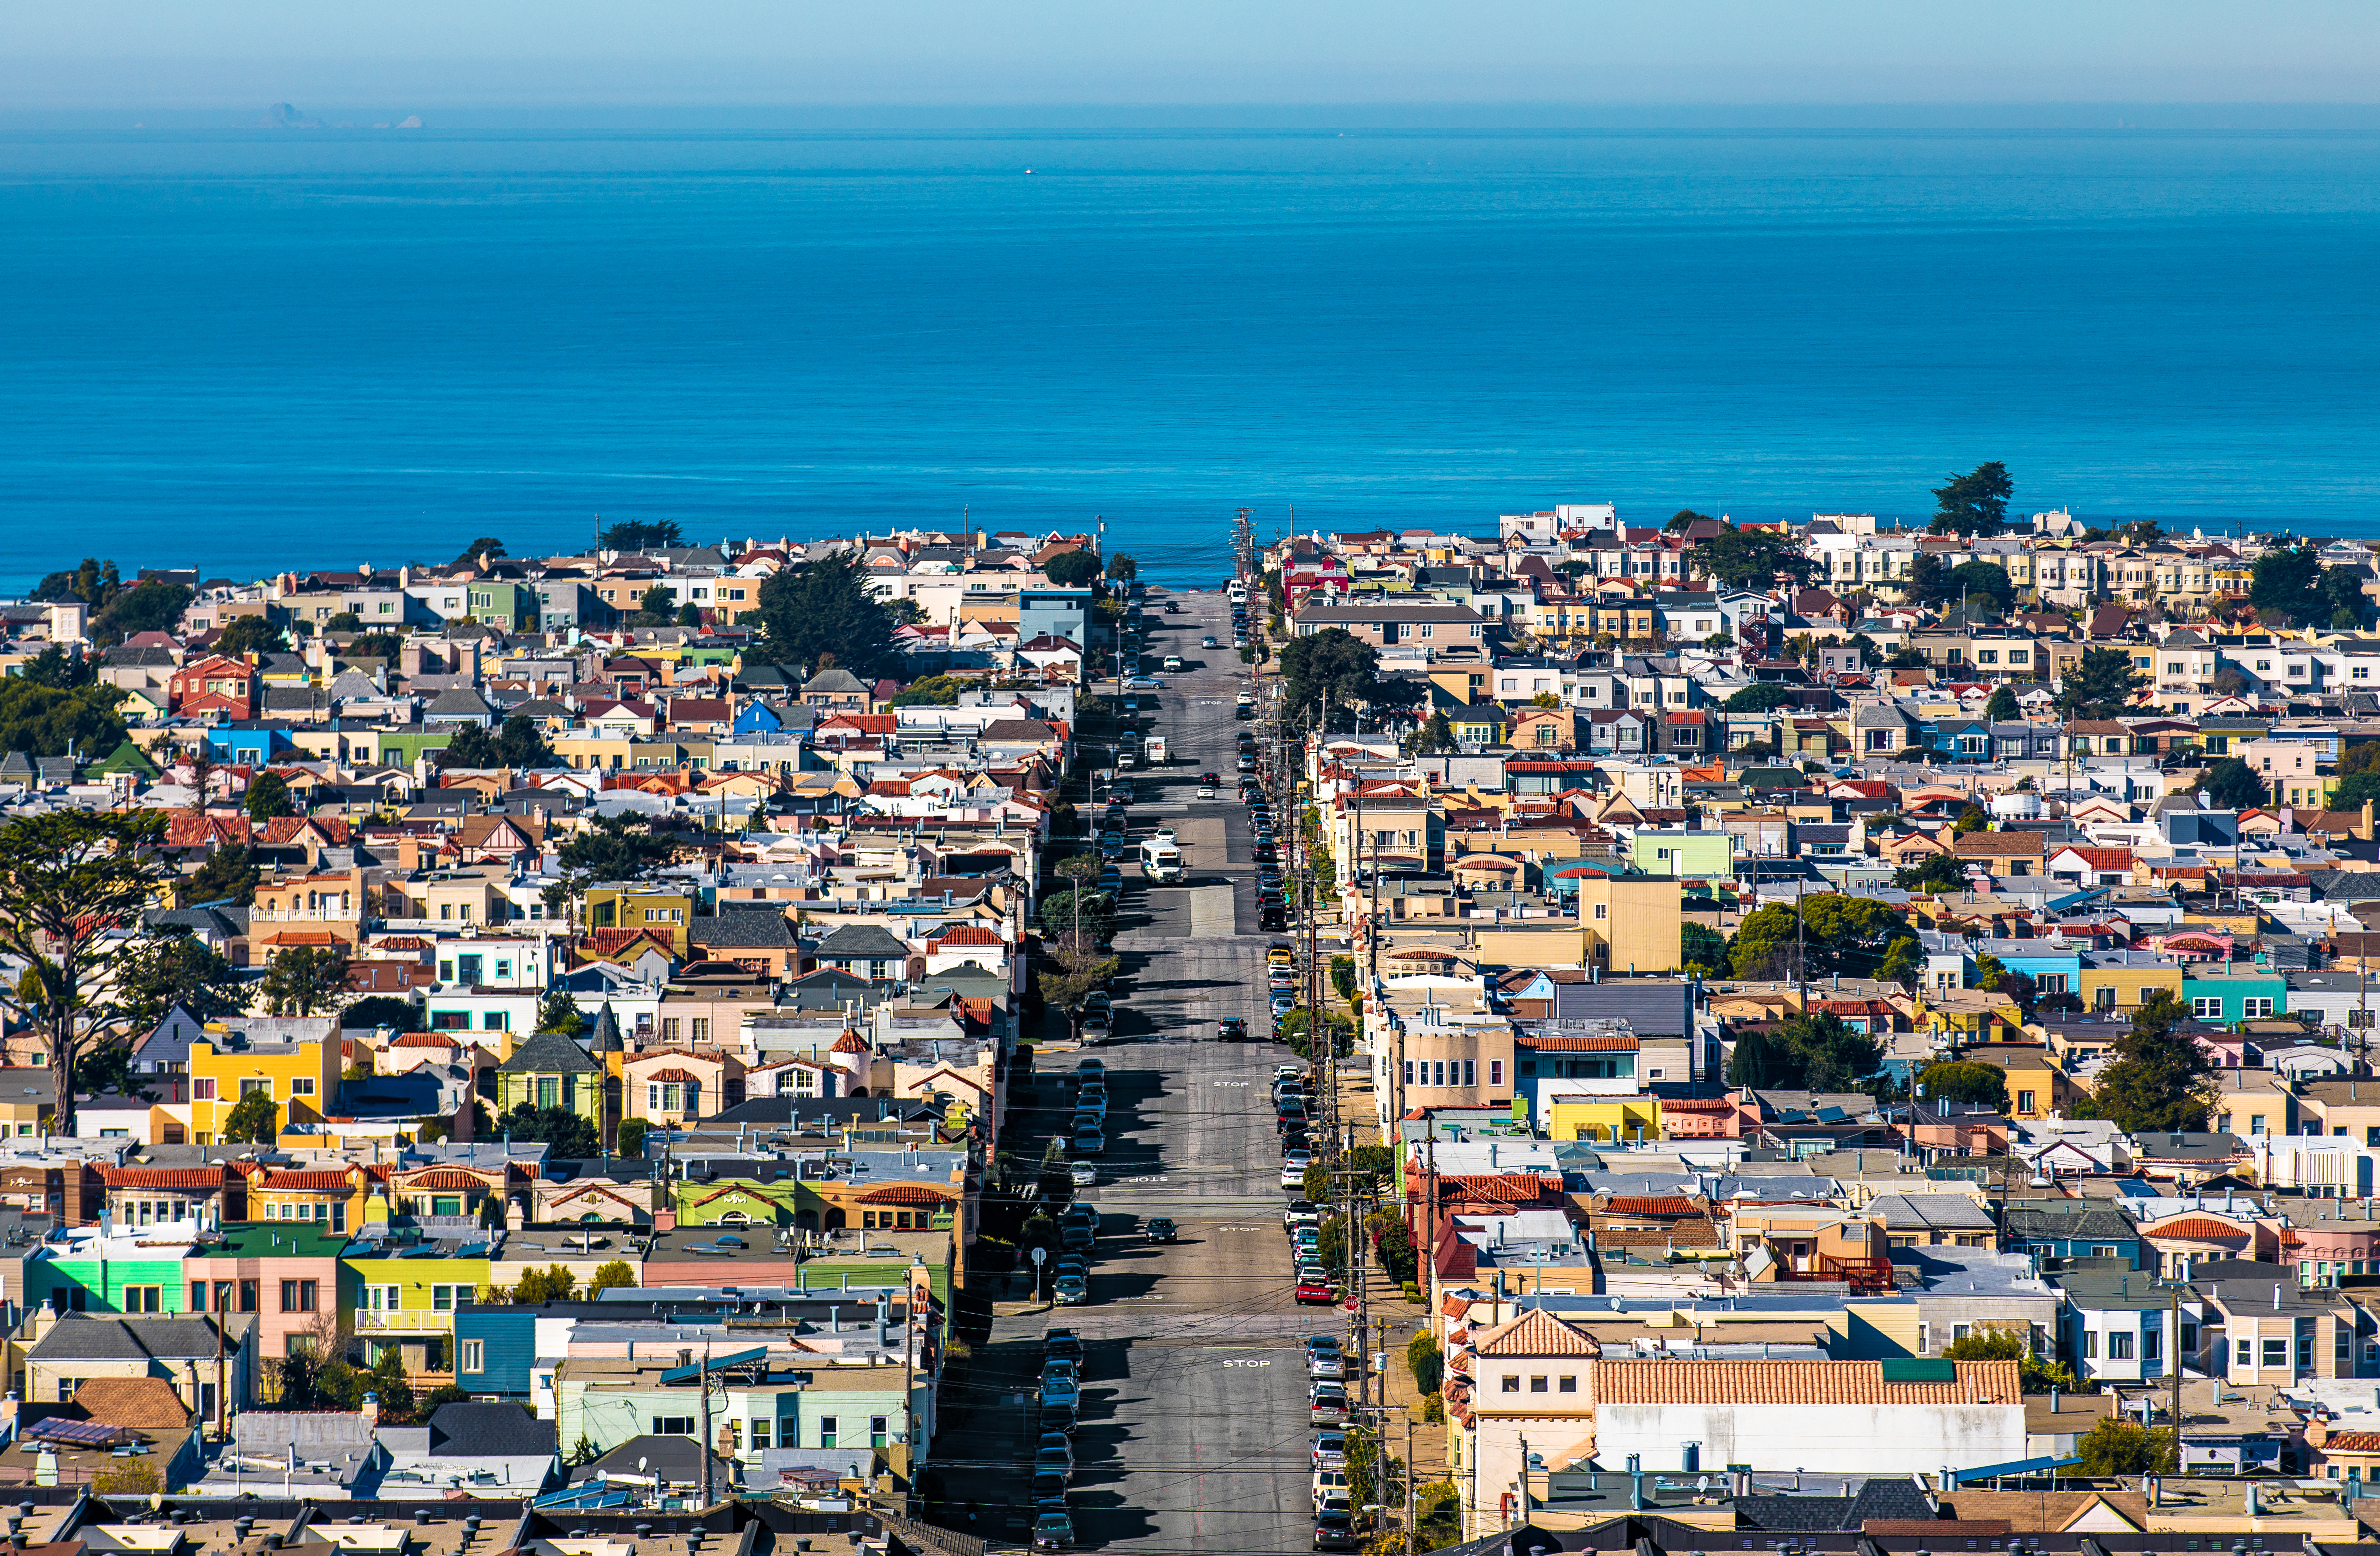 Aerial shot of homes in San Francisco, ocean in the background.